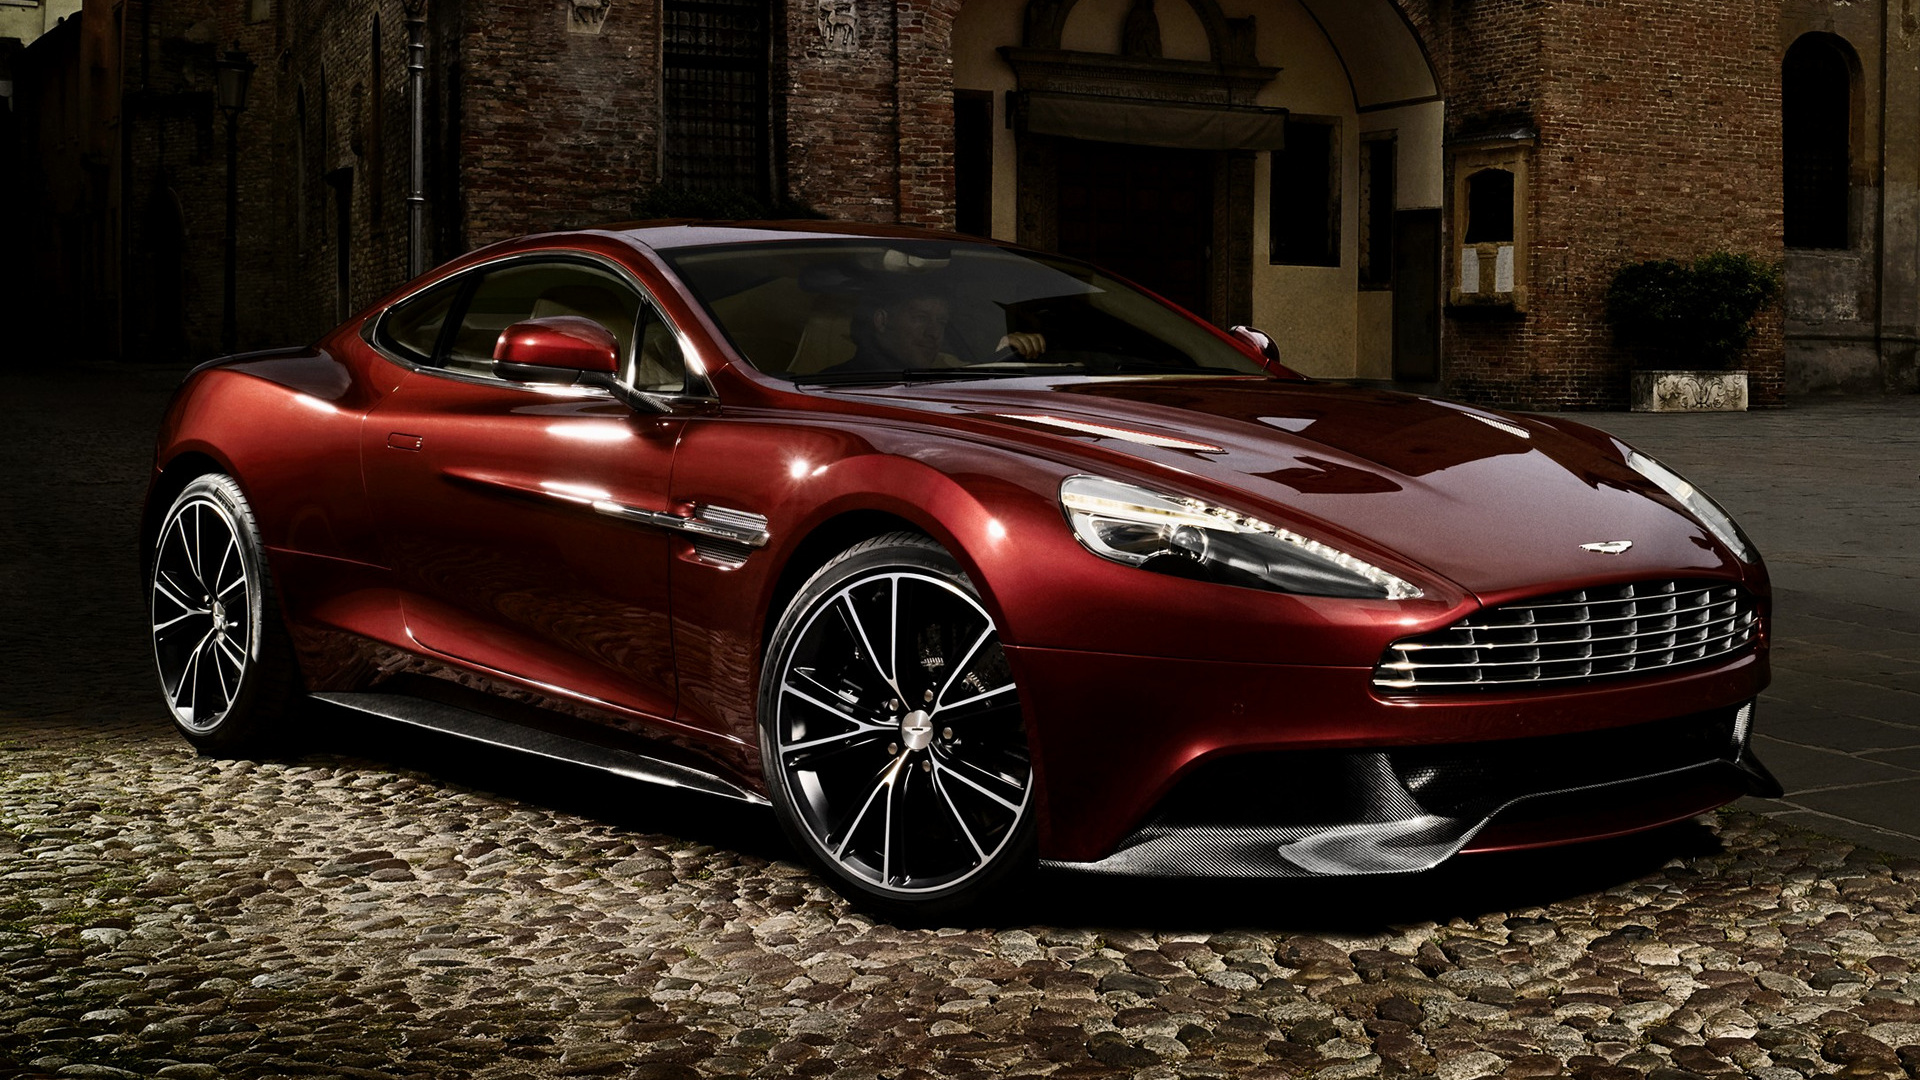 Aston Martin Vanquish 2012 Wallpapers And Hd Images